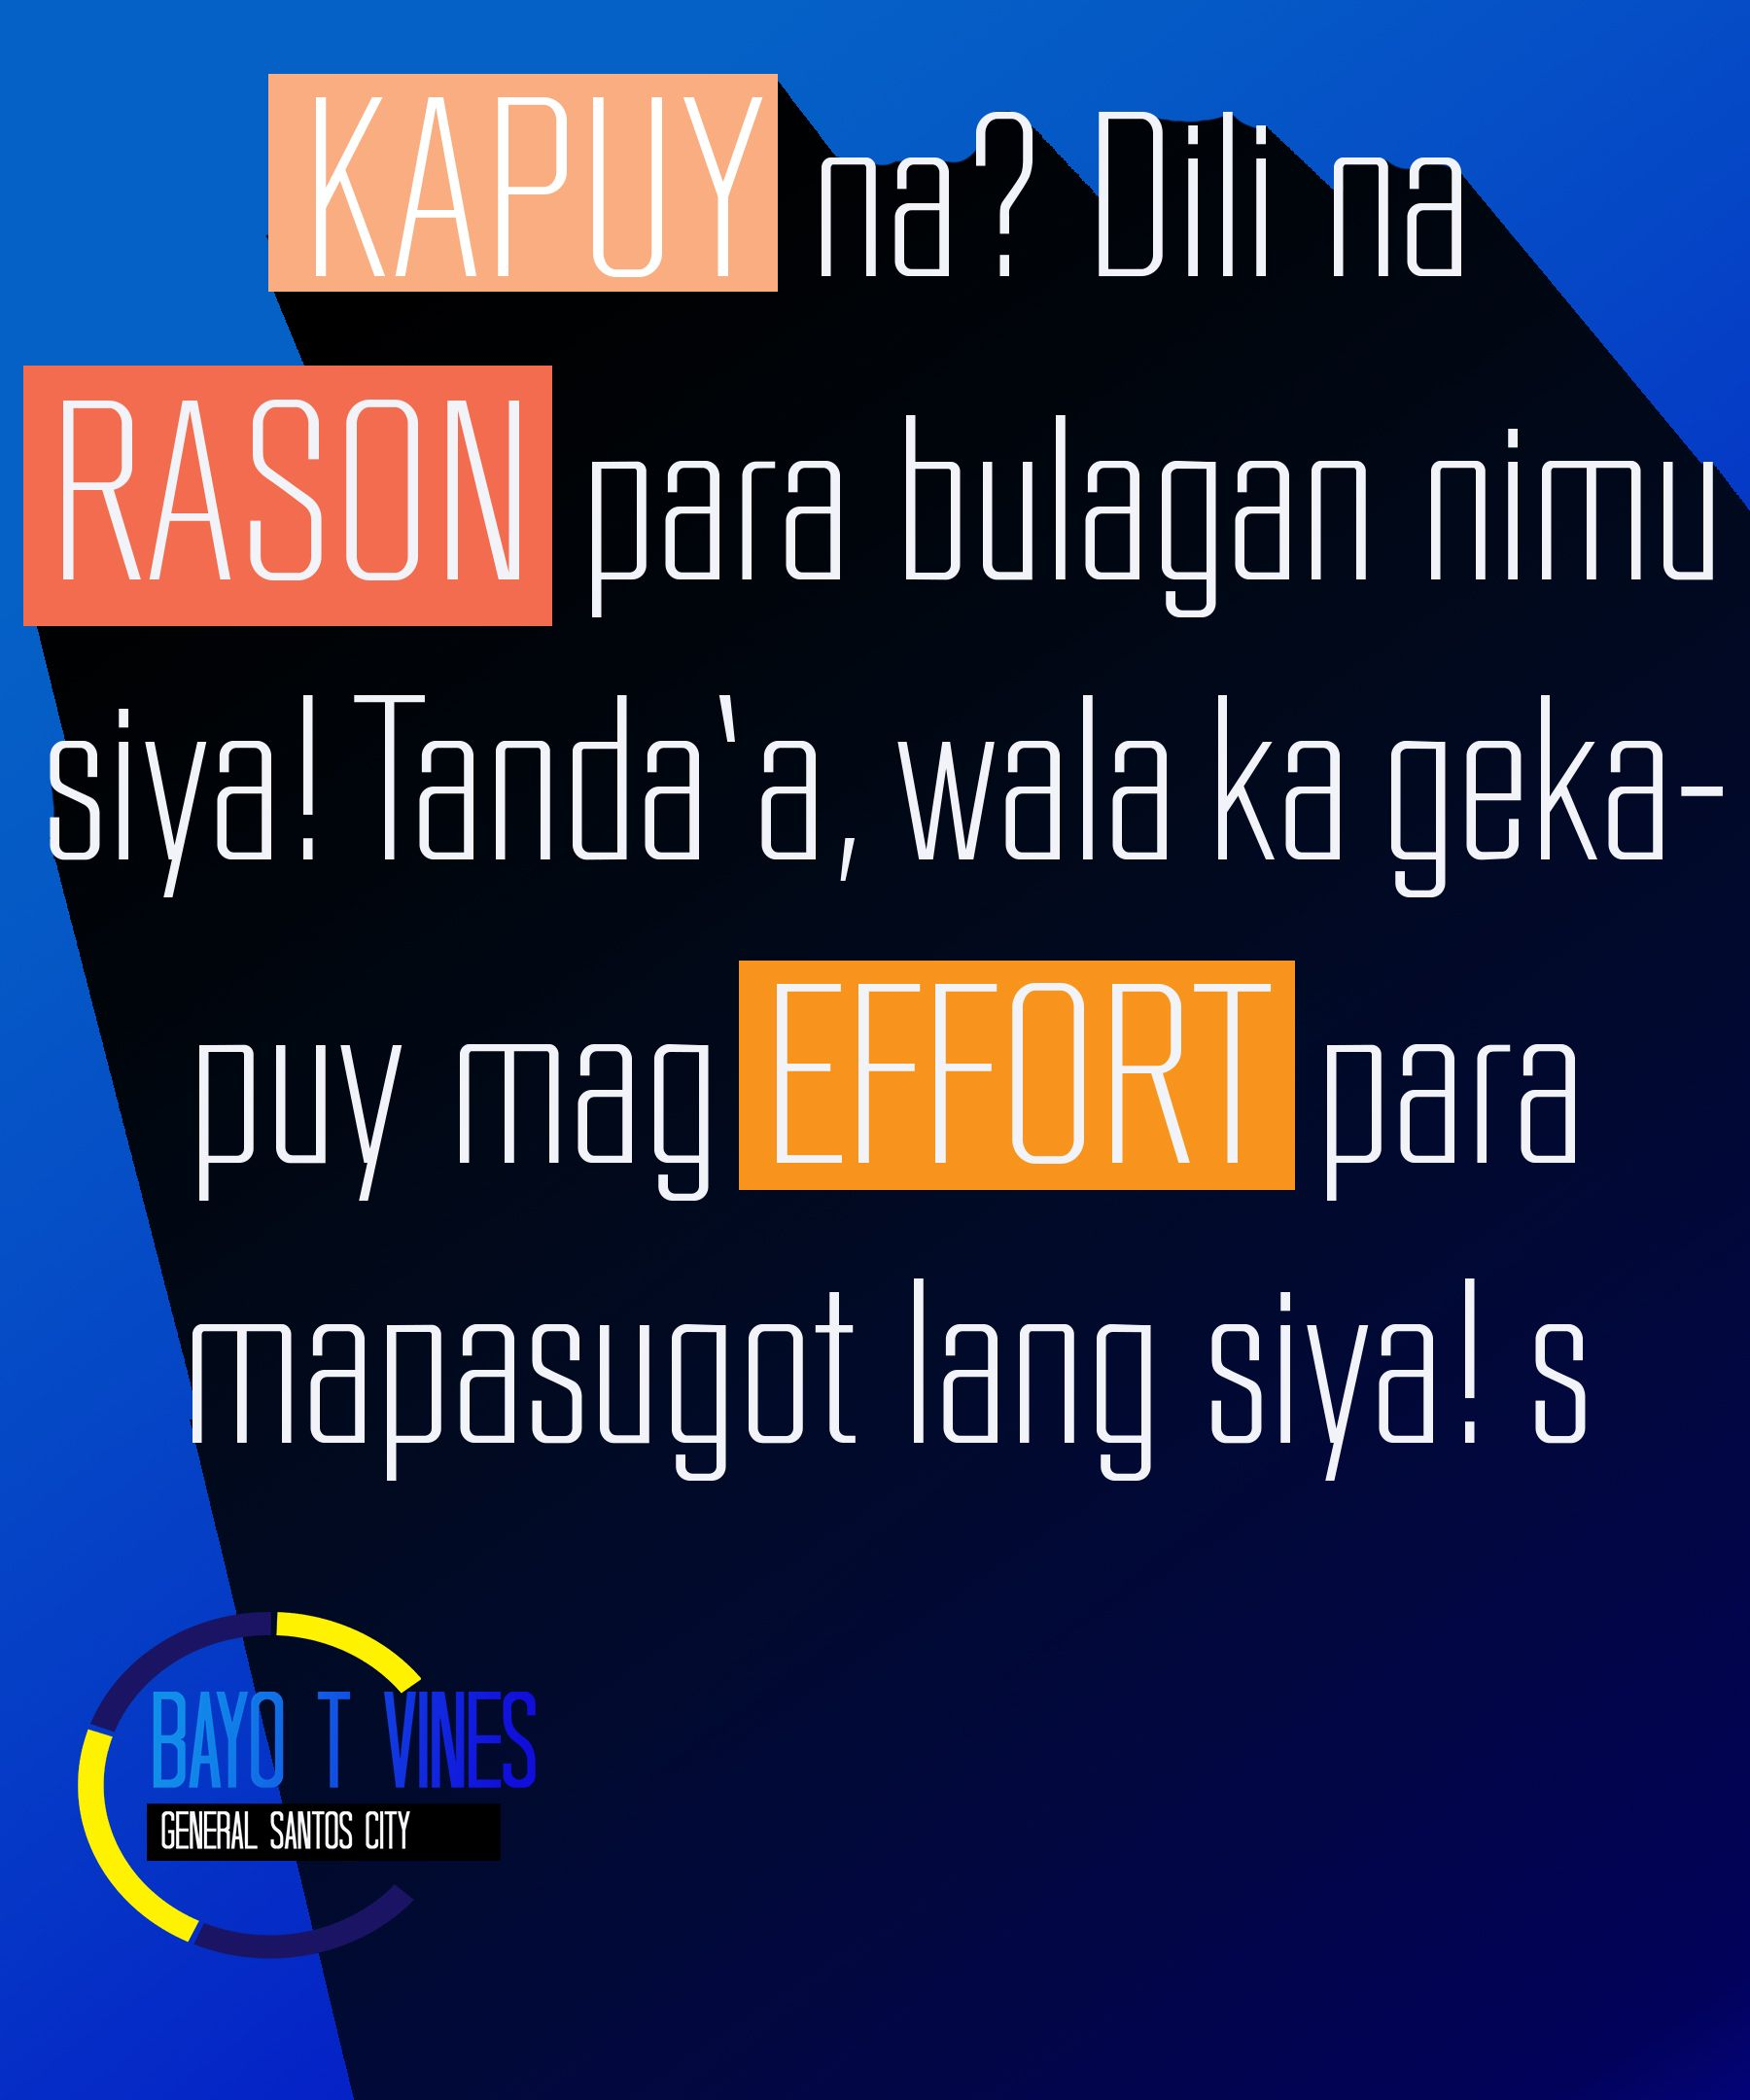 Bisaya Quotes By Bayo T Vines Bisaya Quotes Quotes Funny Quotes